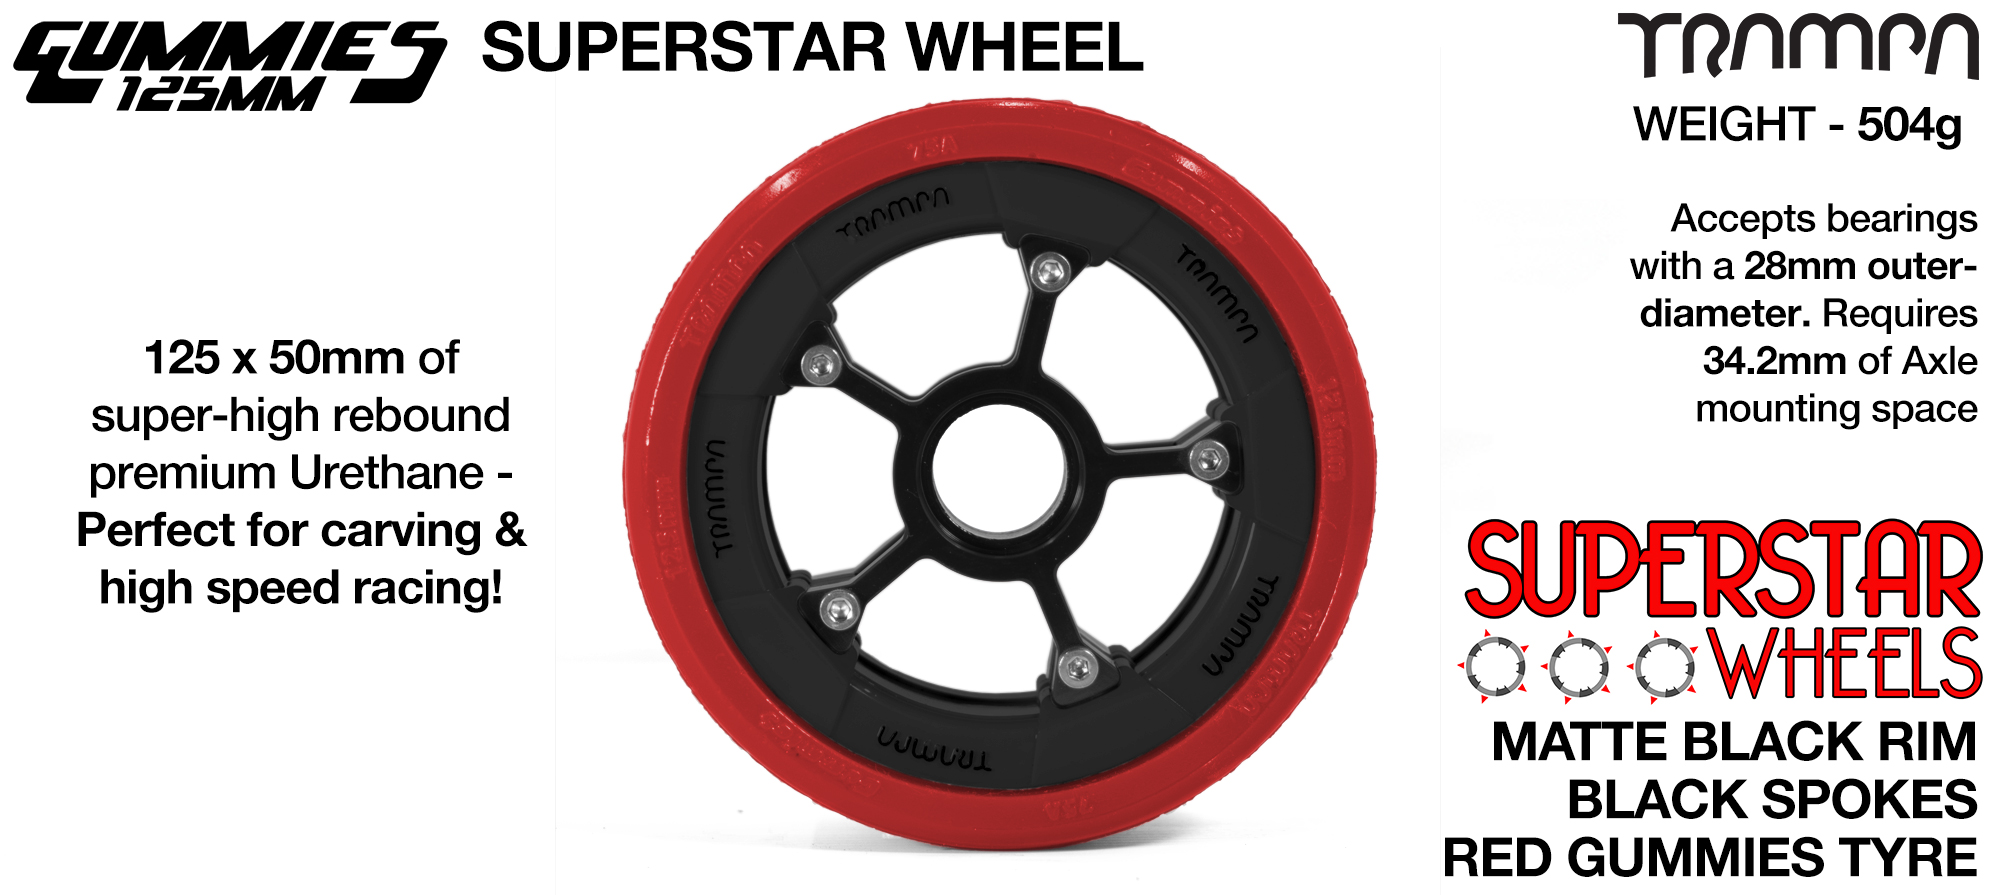 Superstar 125mm Longboard Wheels - Matt BLACK Superstar Rim BLACK Spokes with red Gummies